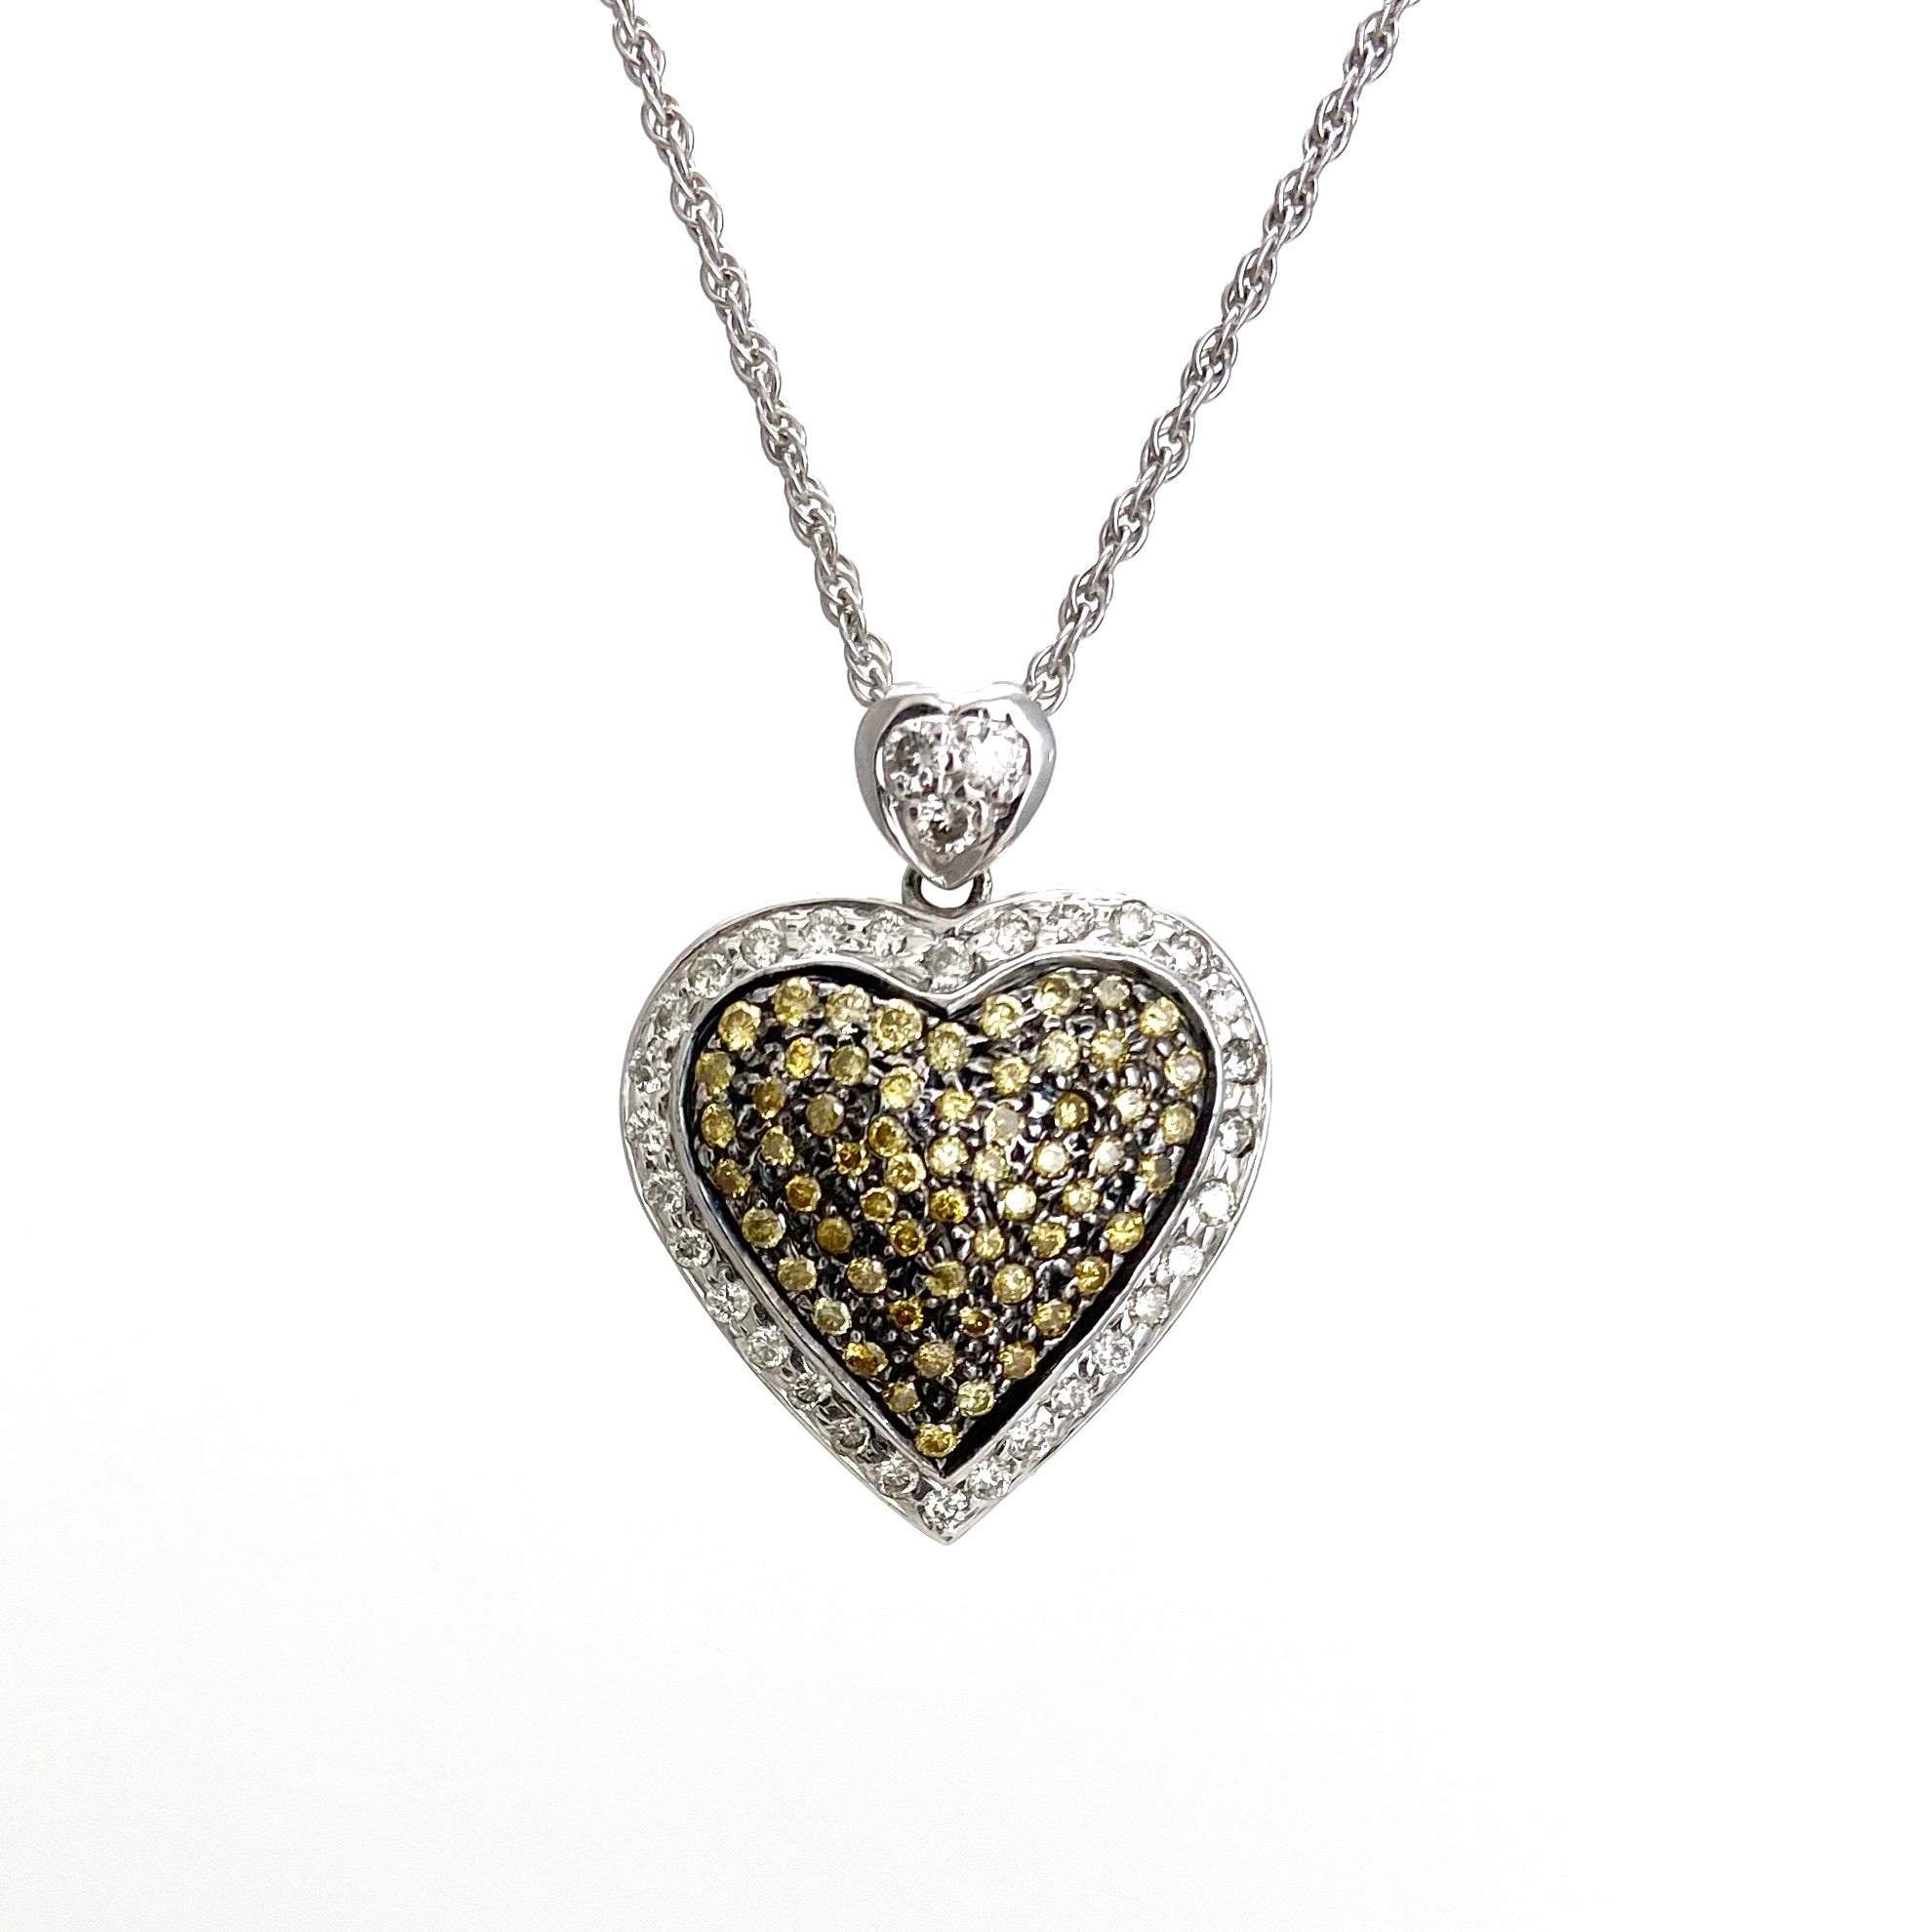 18K White and Yellow Gold Diamond Heart Pendant with 18K Chain